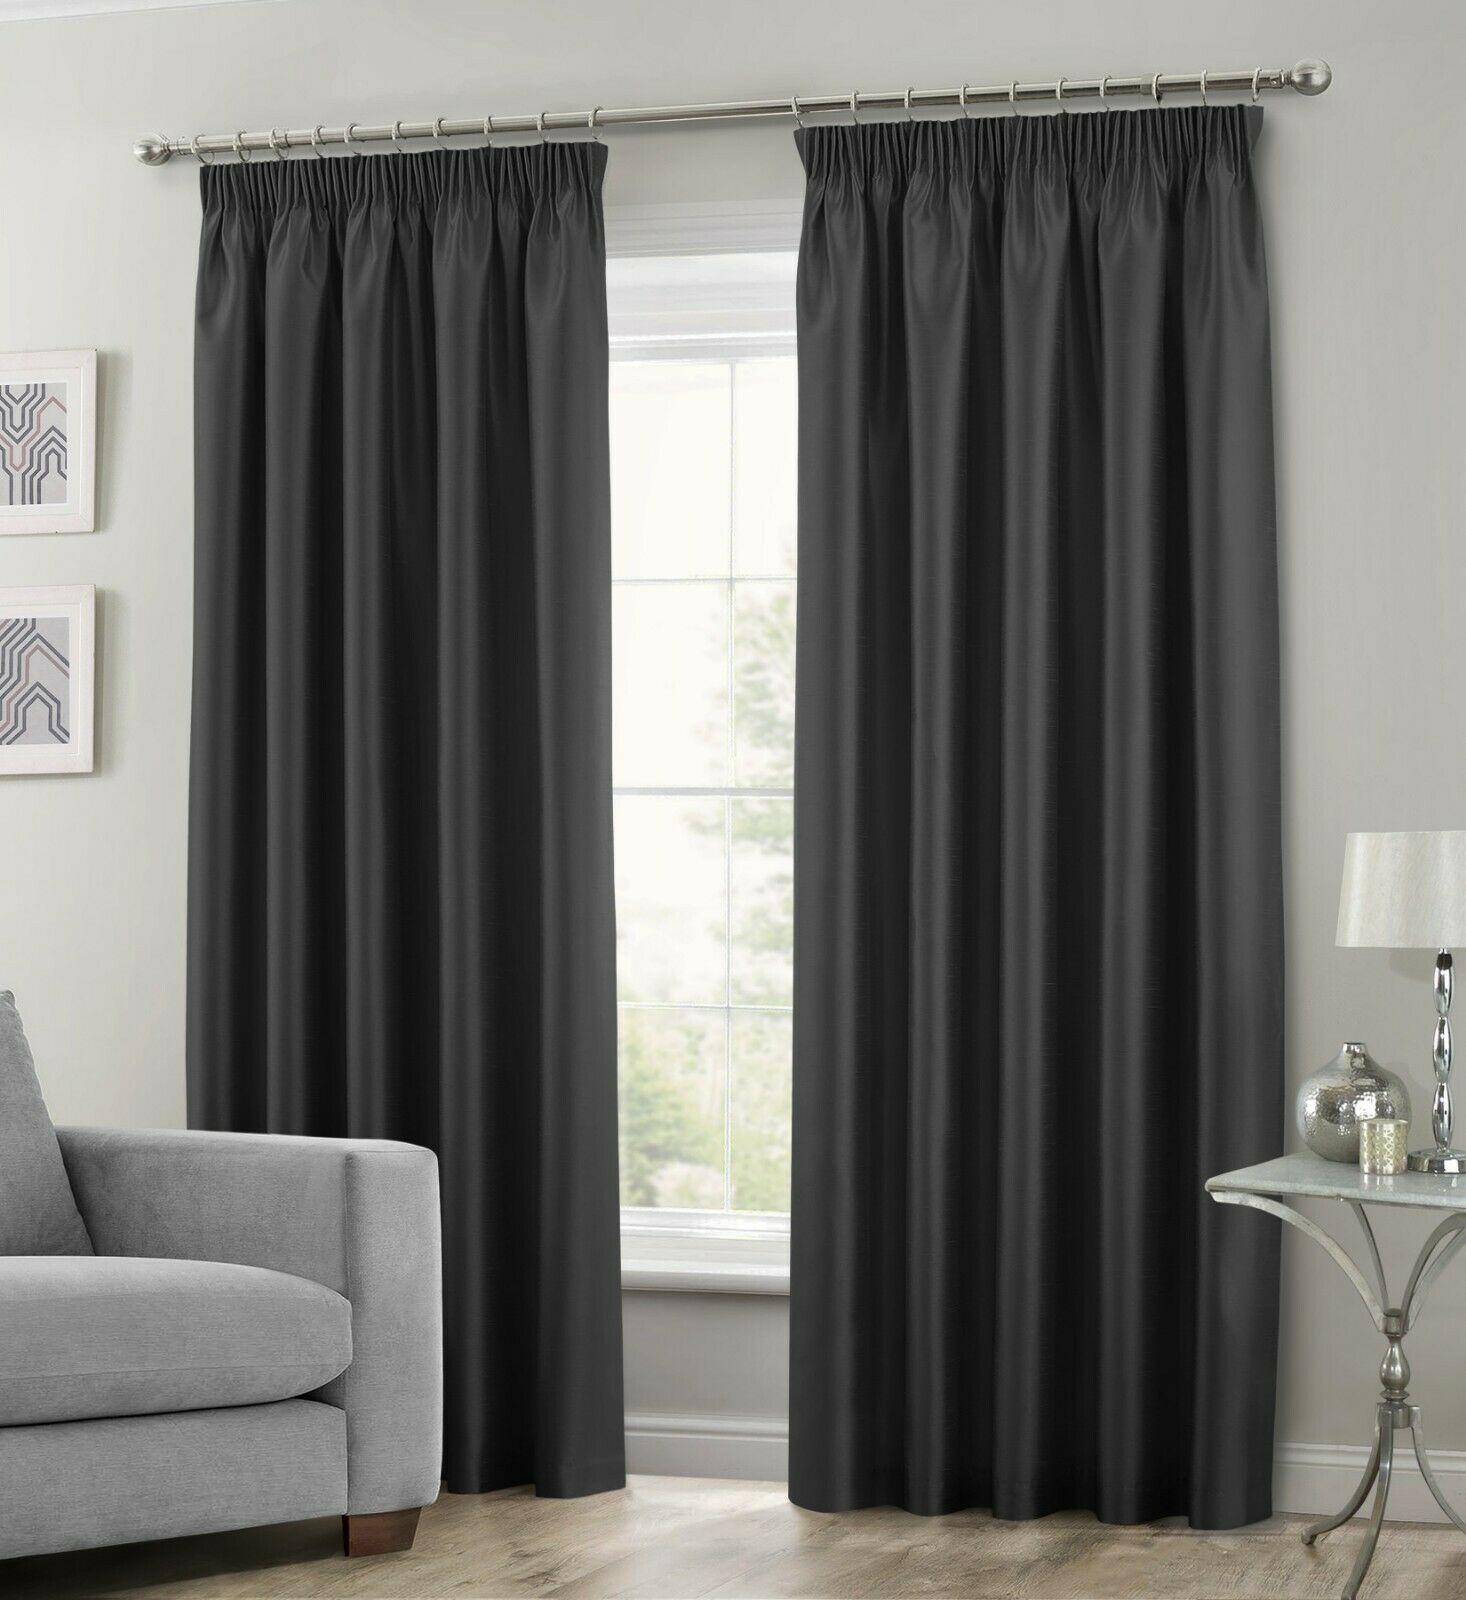 BLACK COLOUR STYLISH FAUX SILK FULLY LINED PAIR OF CURTAINS